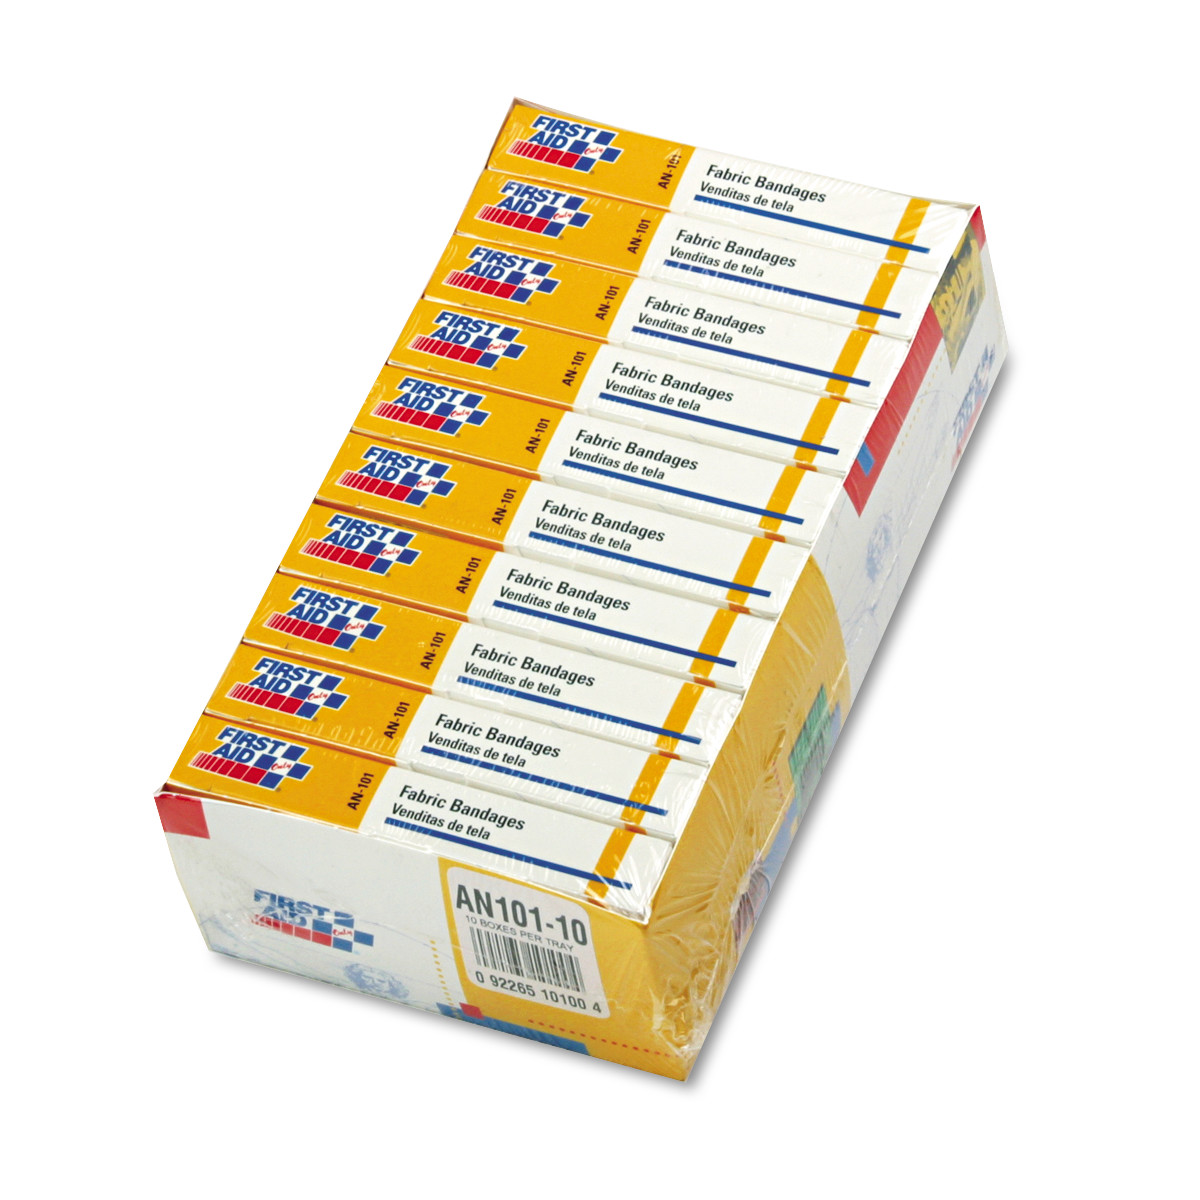 "First-Aid Refill Fabric Adhesive Bandages, 1"" x 3"", 160/Pack"